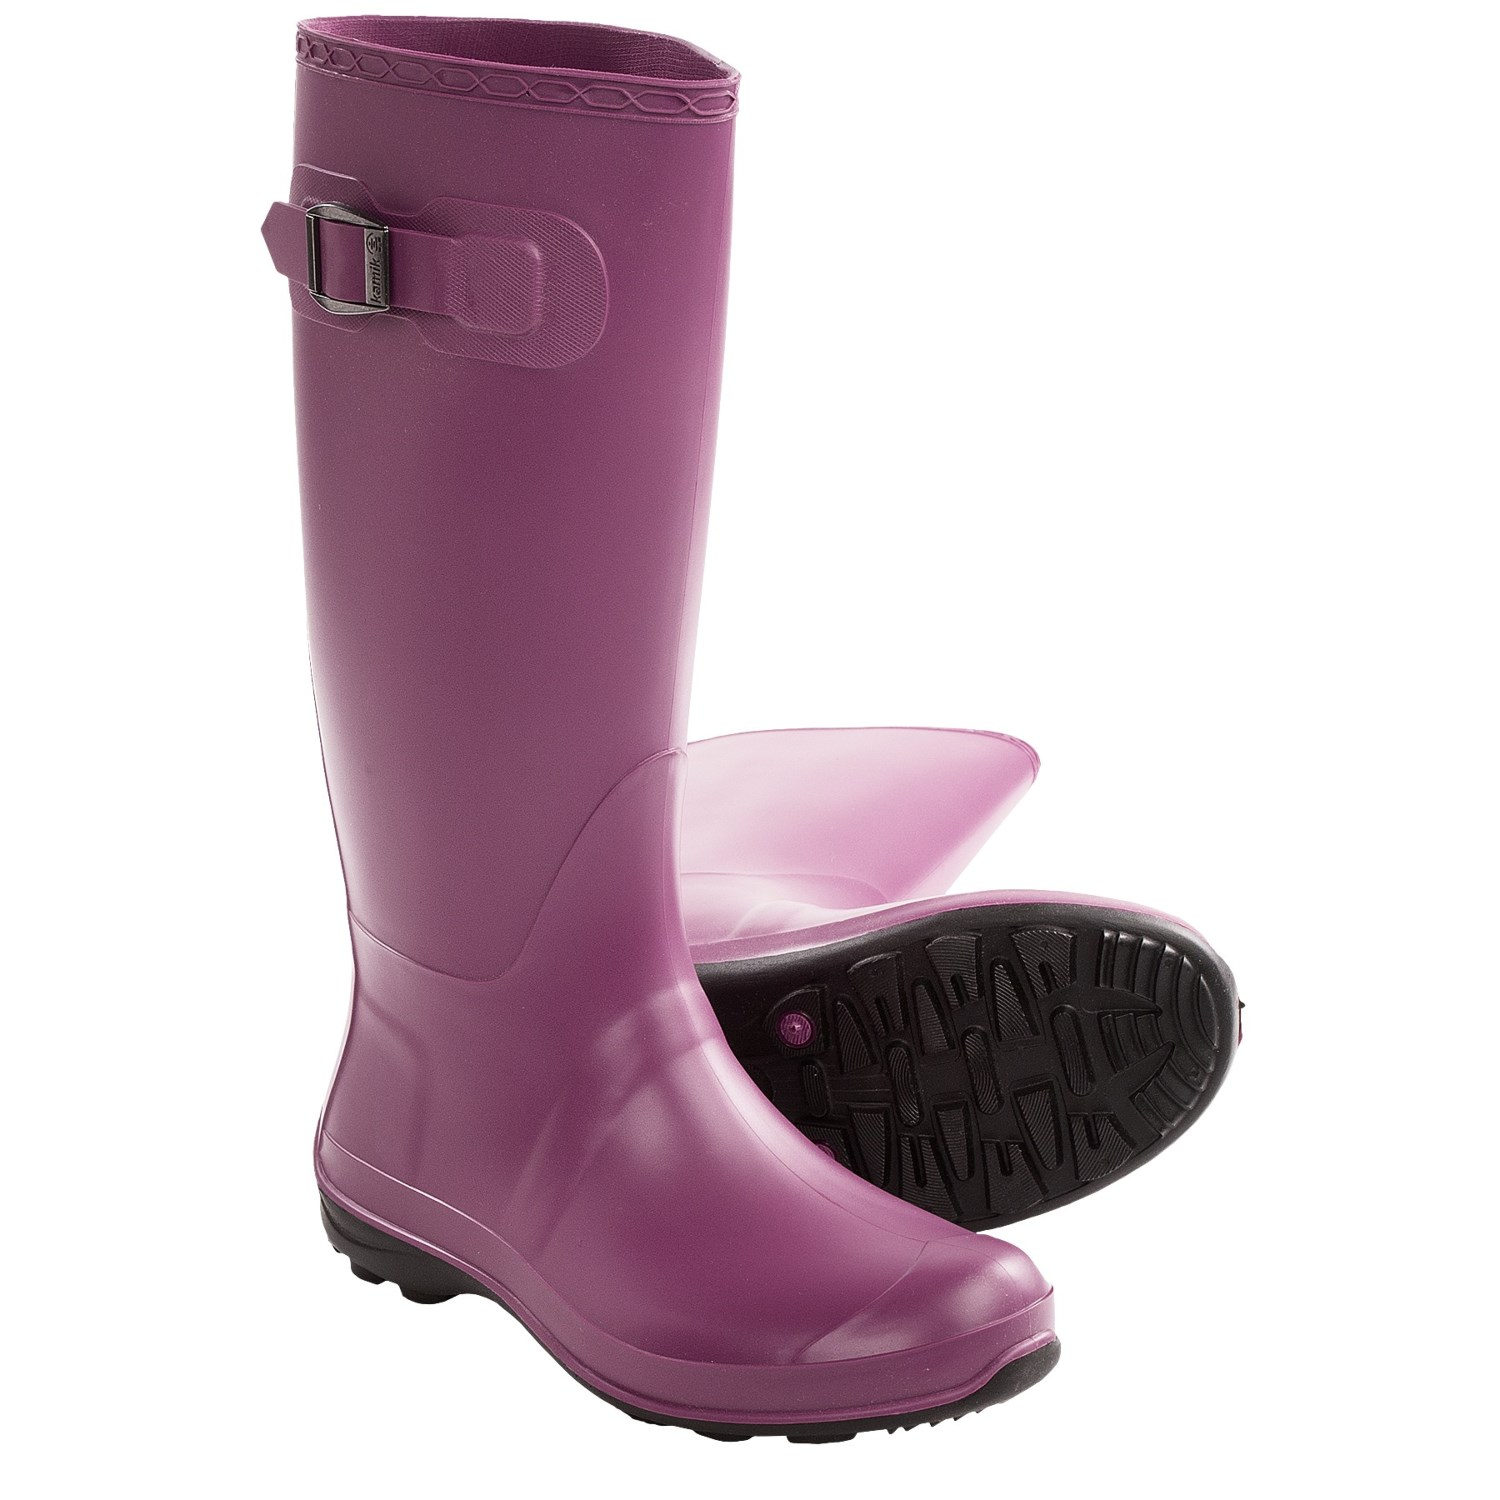 Original Holloway Rain Boot For Women Burberry Holloway Rain Boot For Women